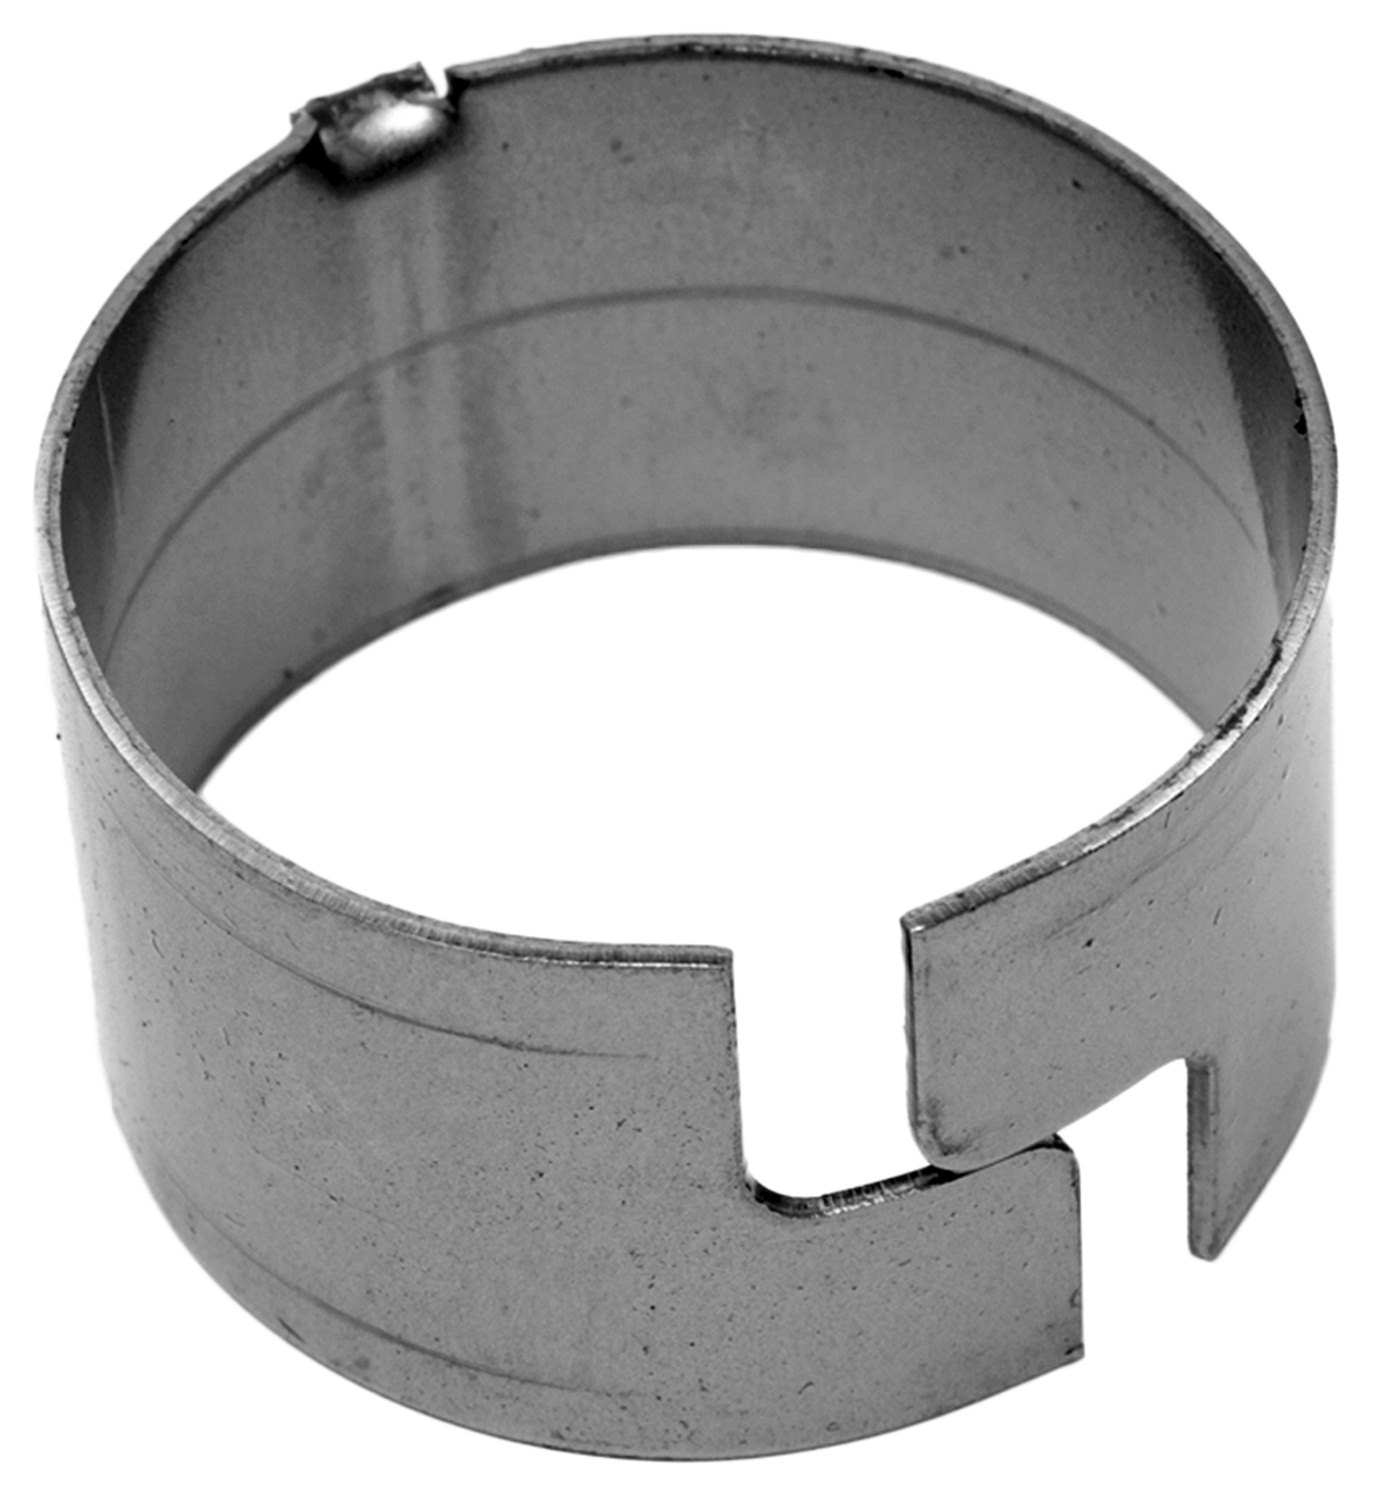 35254 Dynomax Exhaust Pipe Adapter 2 Inch Inlet Inside Diameter